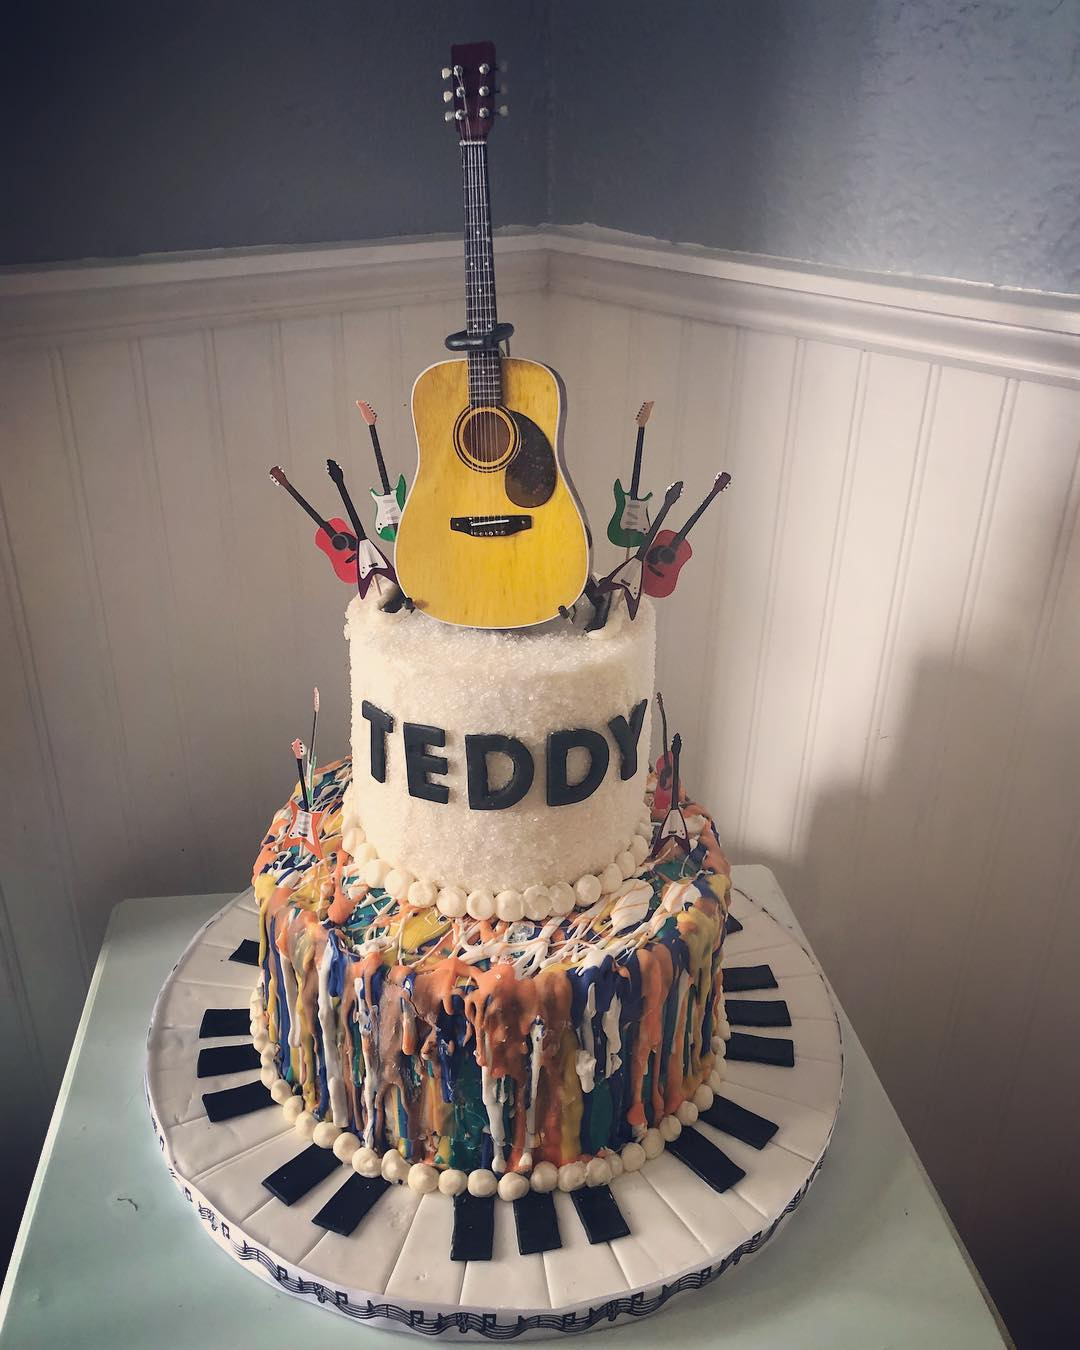 Teddy's Musical Drip Cake